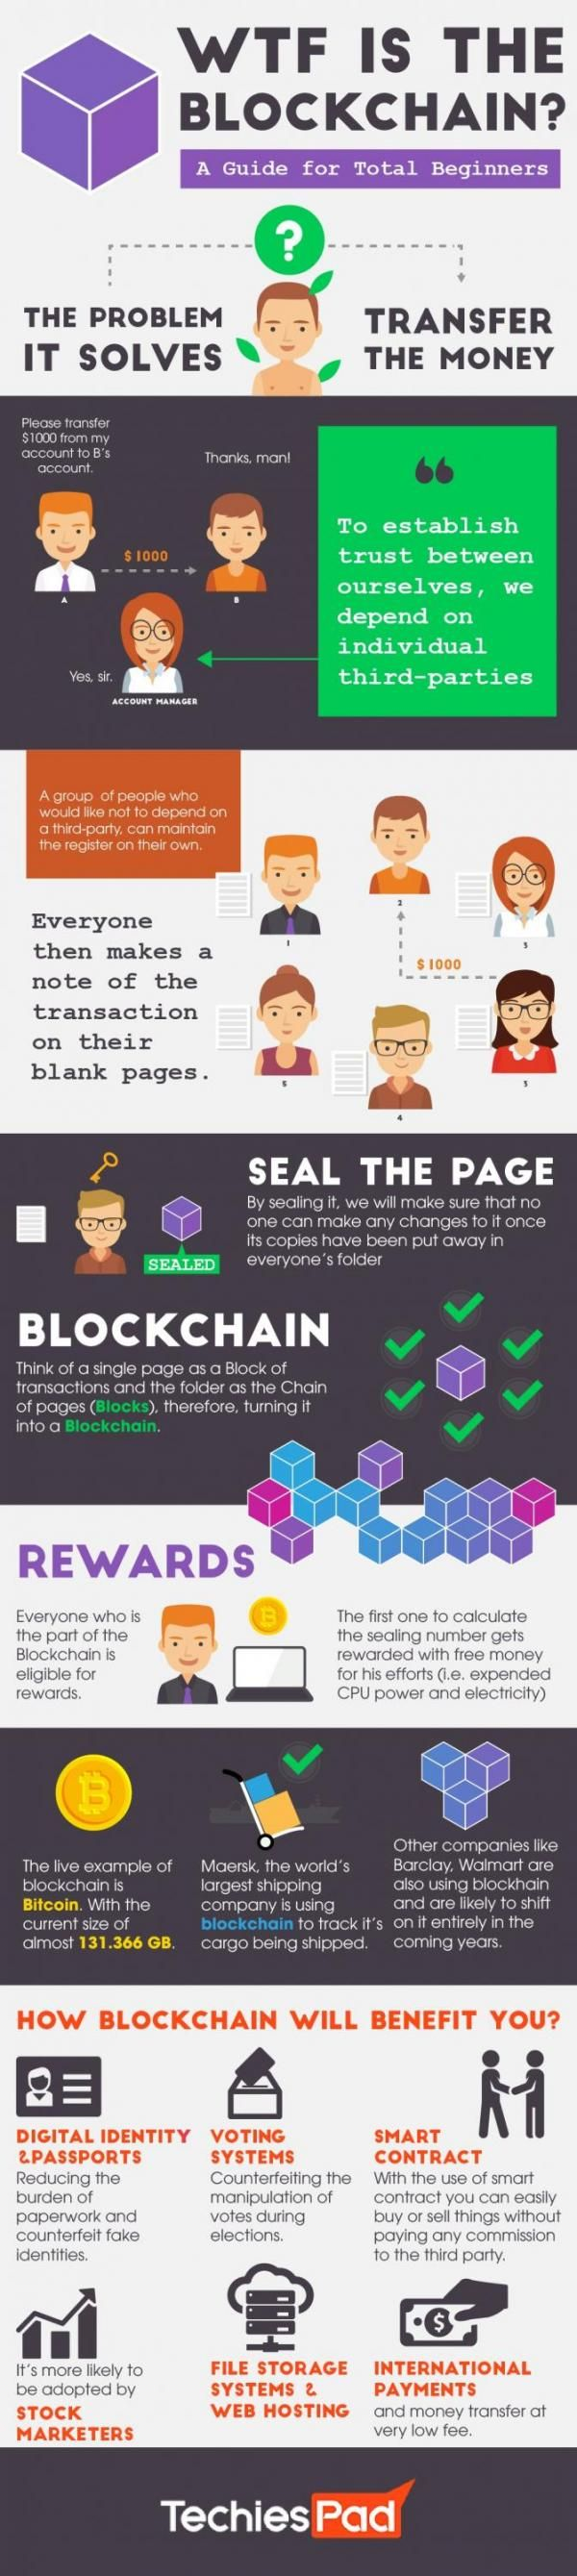 WTF Is Blockchain? - The Ultimate Beginner's Guide | Zero Hedge